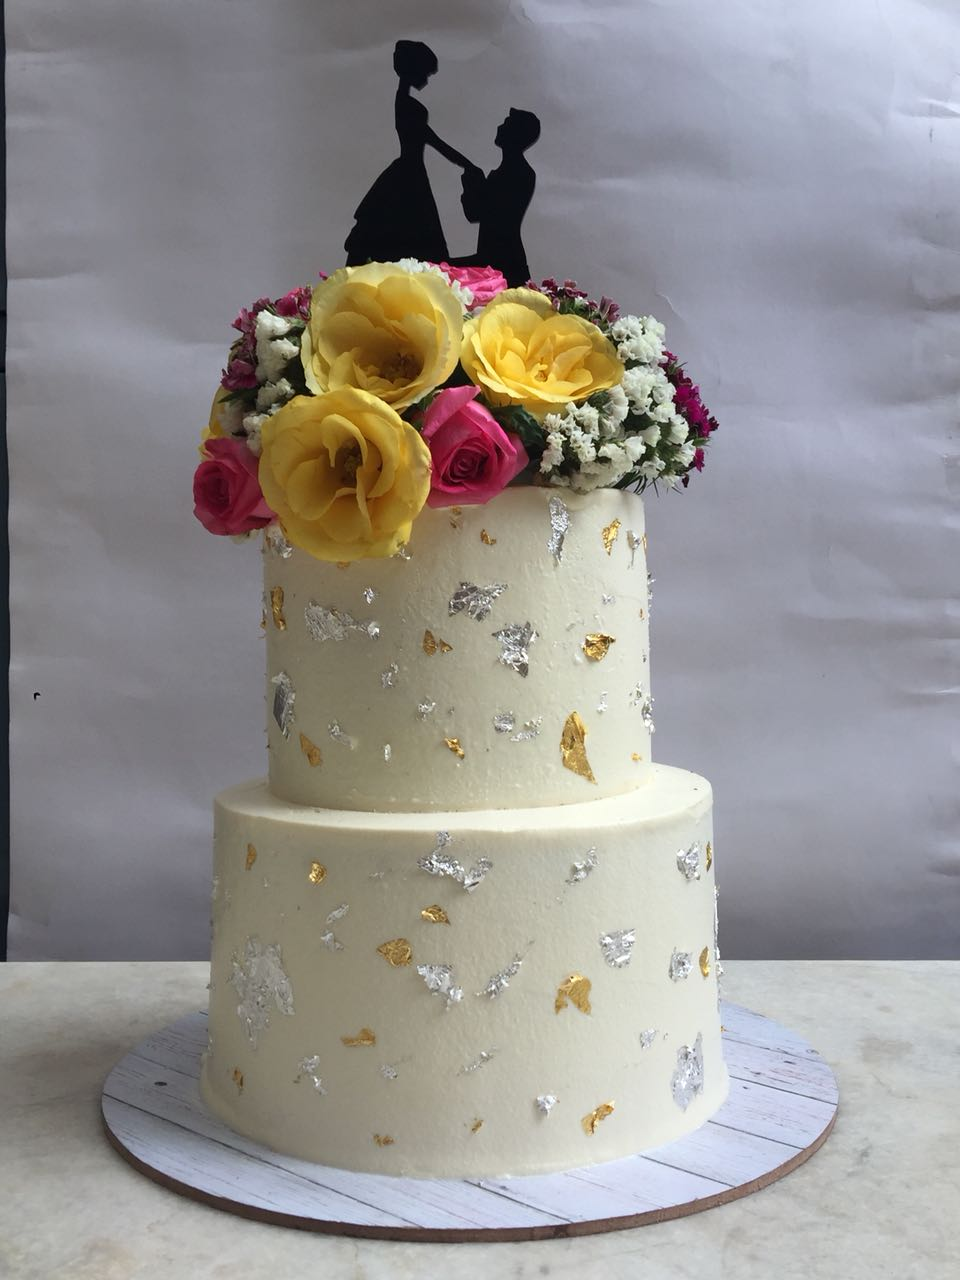 wedding cakes, cake ideas